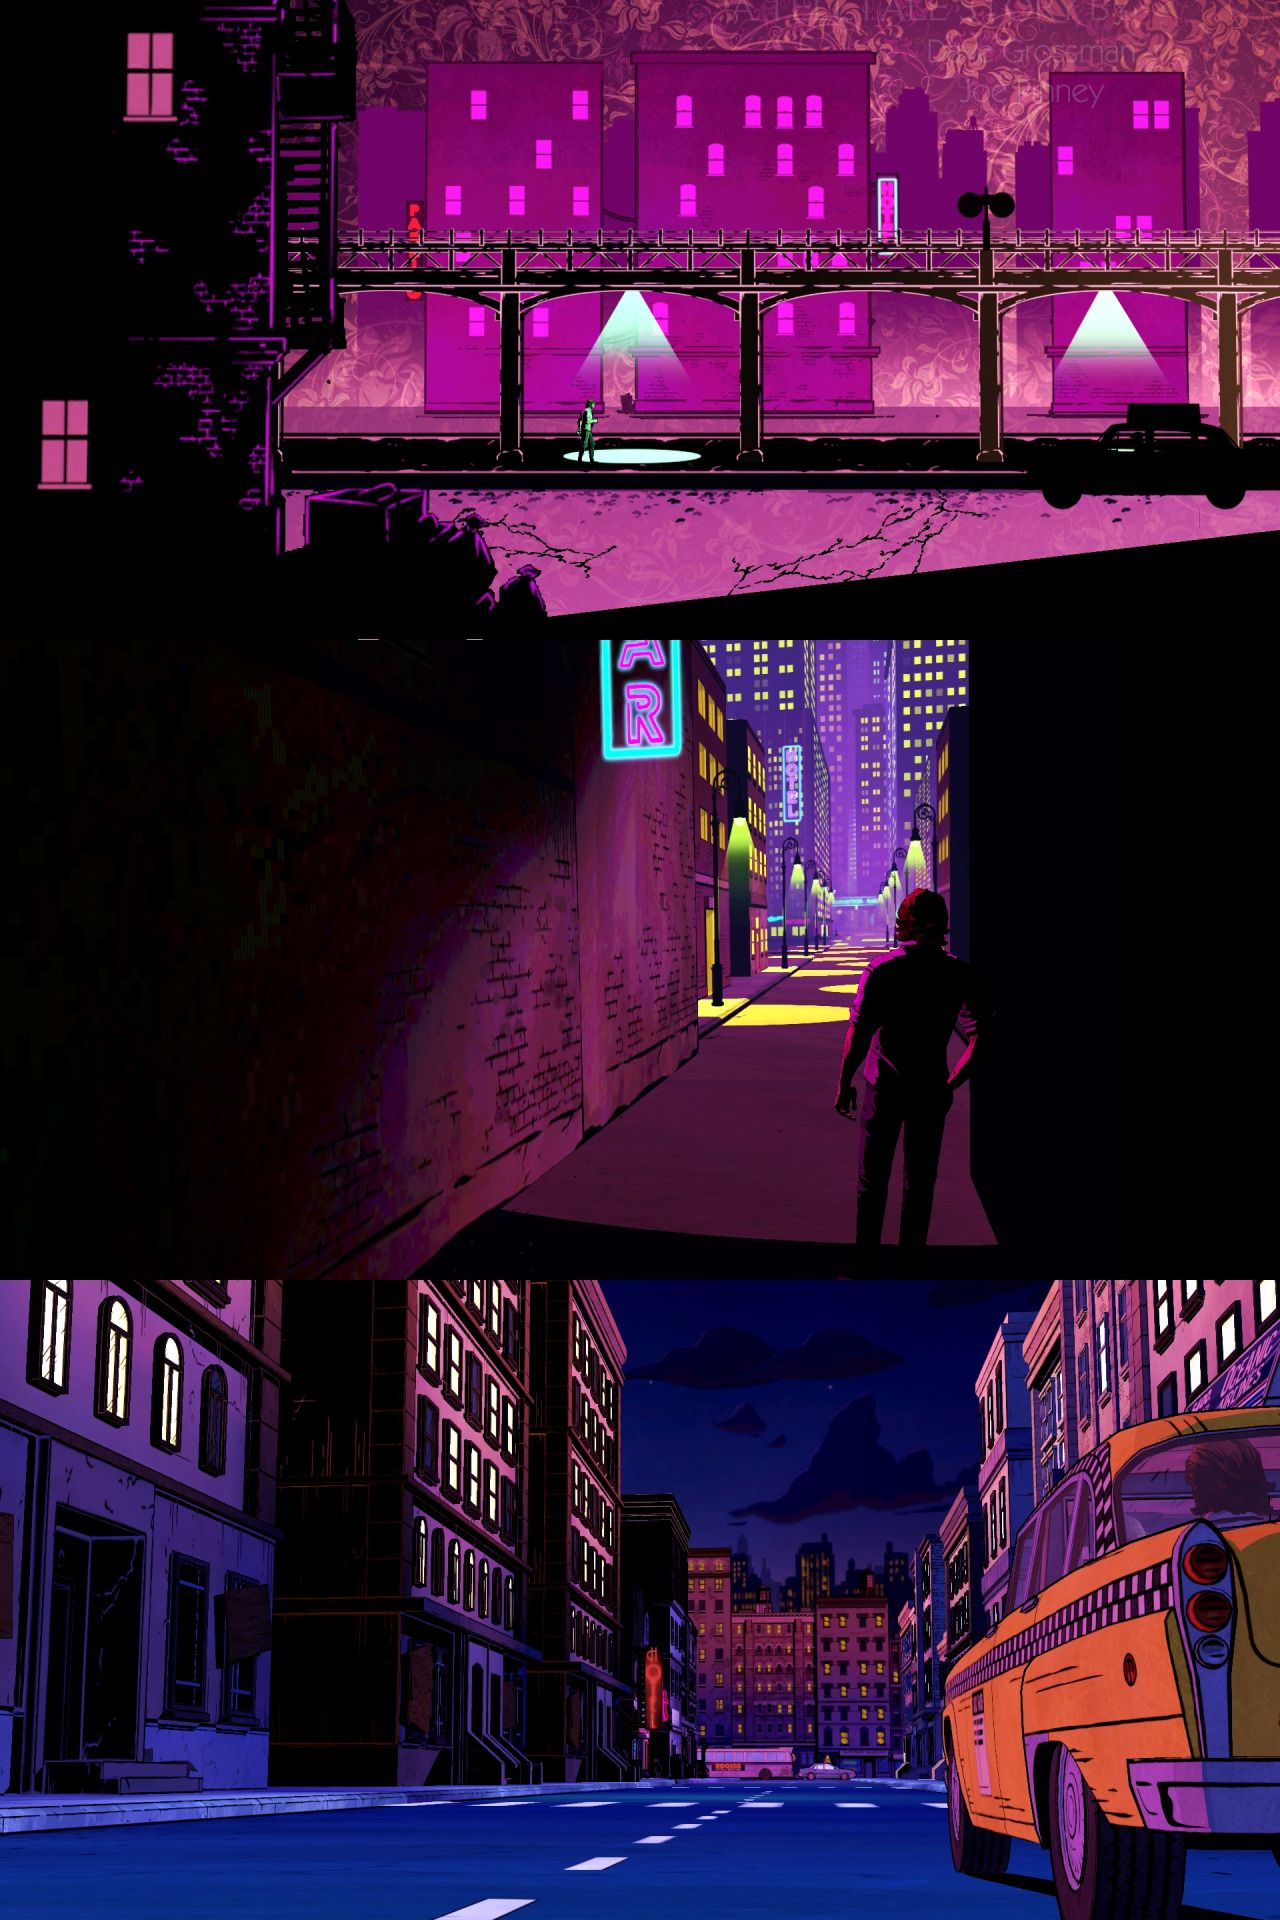 Piers Nivans Deserved Better With Images The Wolf Among Us Cyberpunk City Night In The Wood